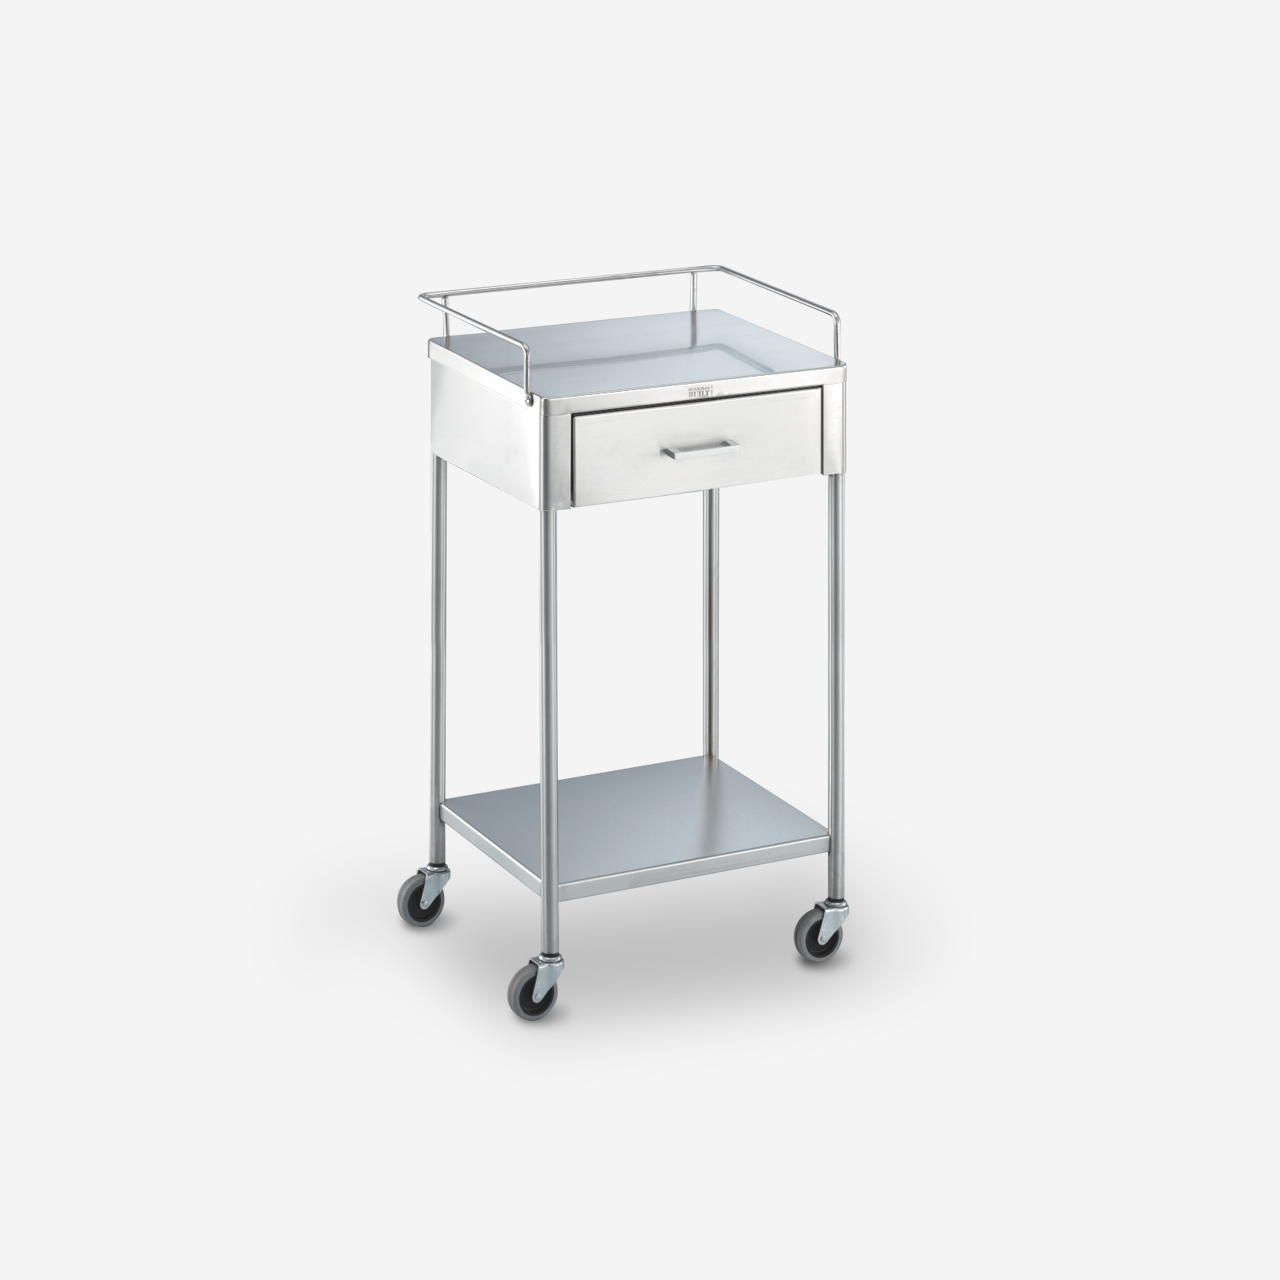 UT   2200   20 X 16 X 34 Stainless Steel Table/Prep Stand W